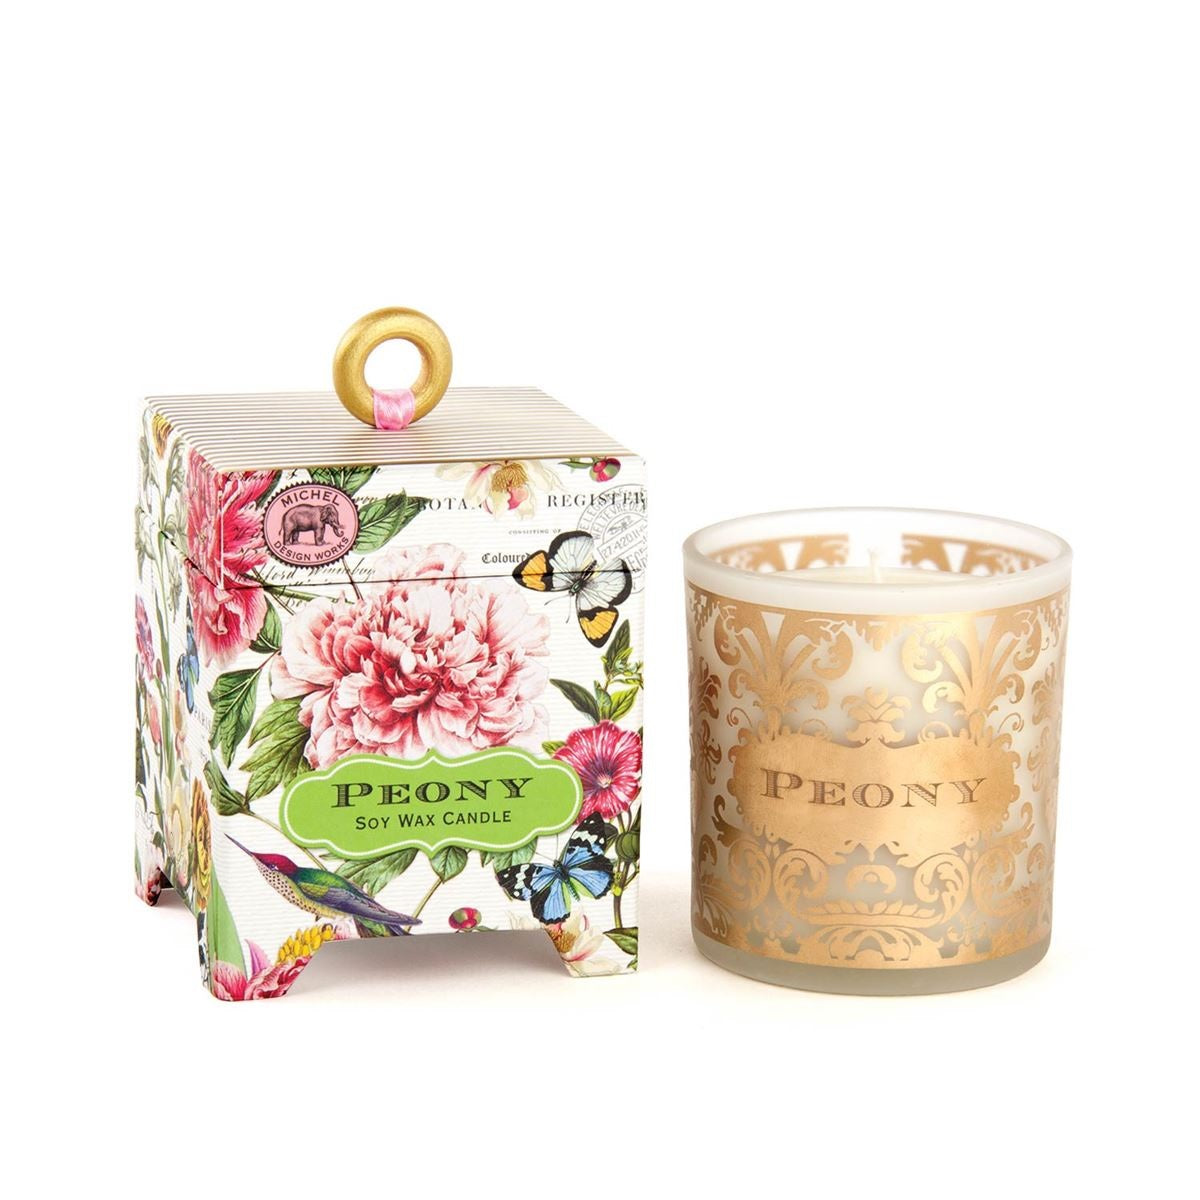 Peony Soy Wax Candle 6.5oz (each)